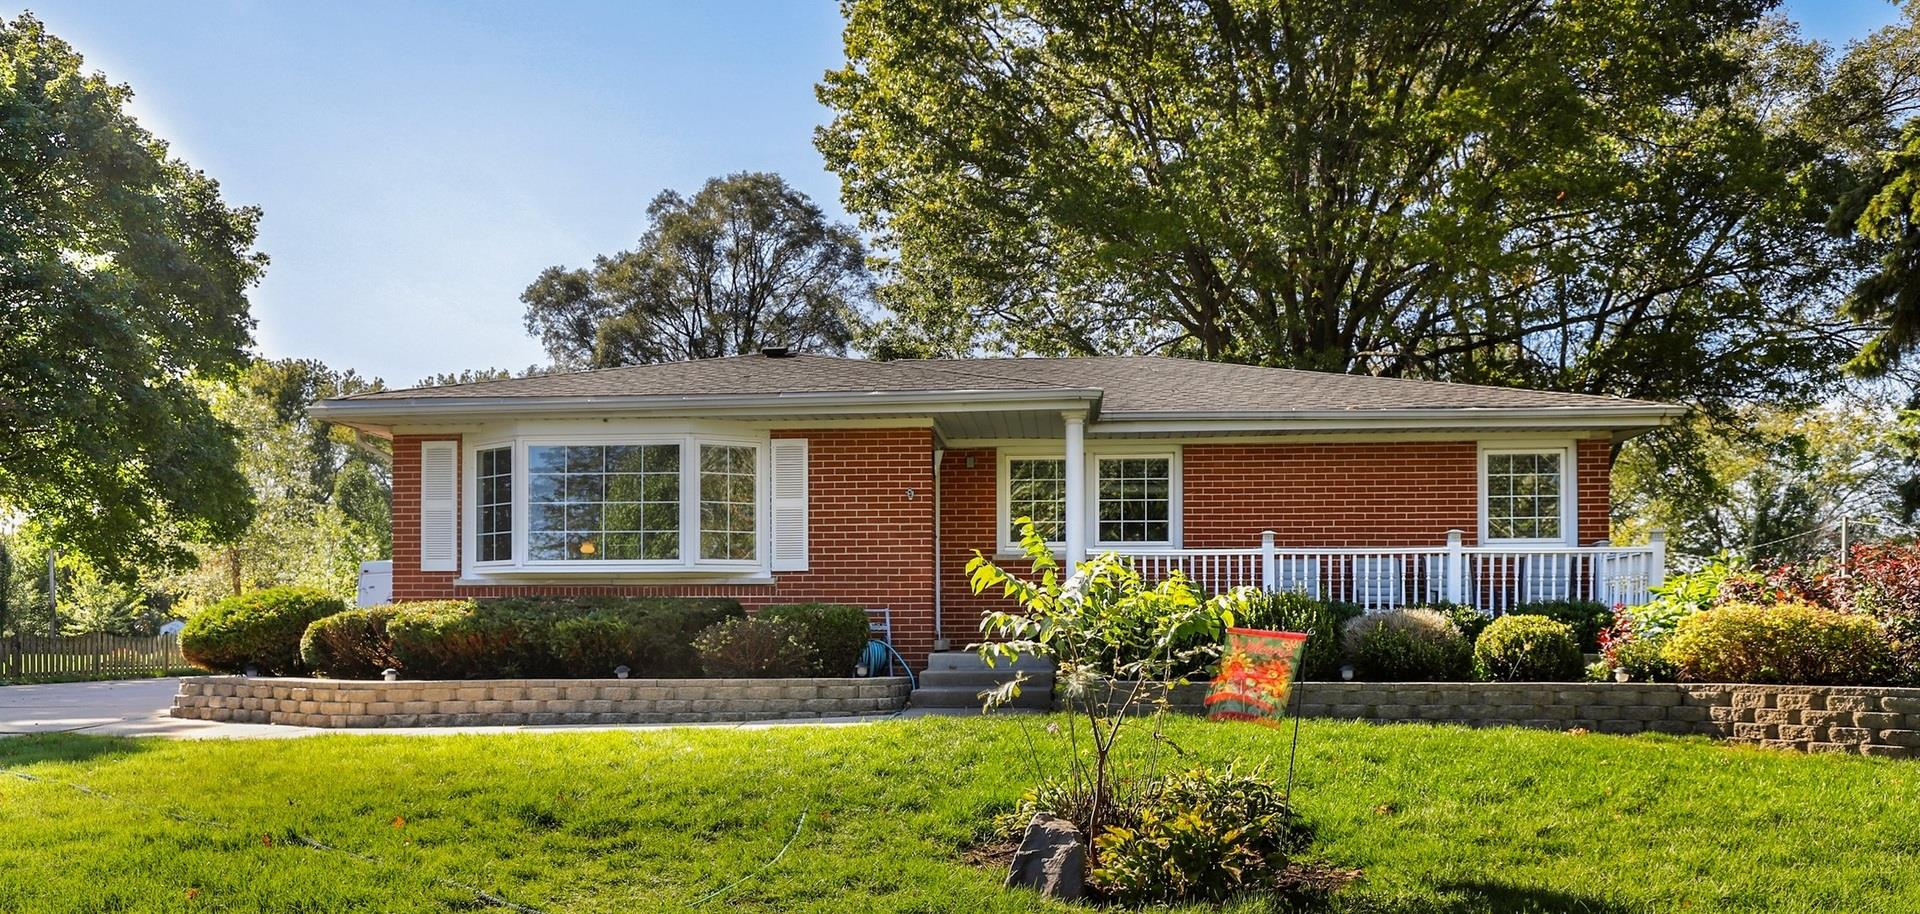 4N726 Country Club Drive, West Chicago, IL 60185 - #: 10890291